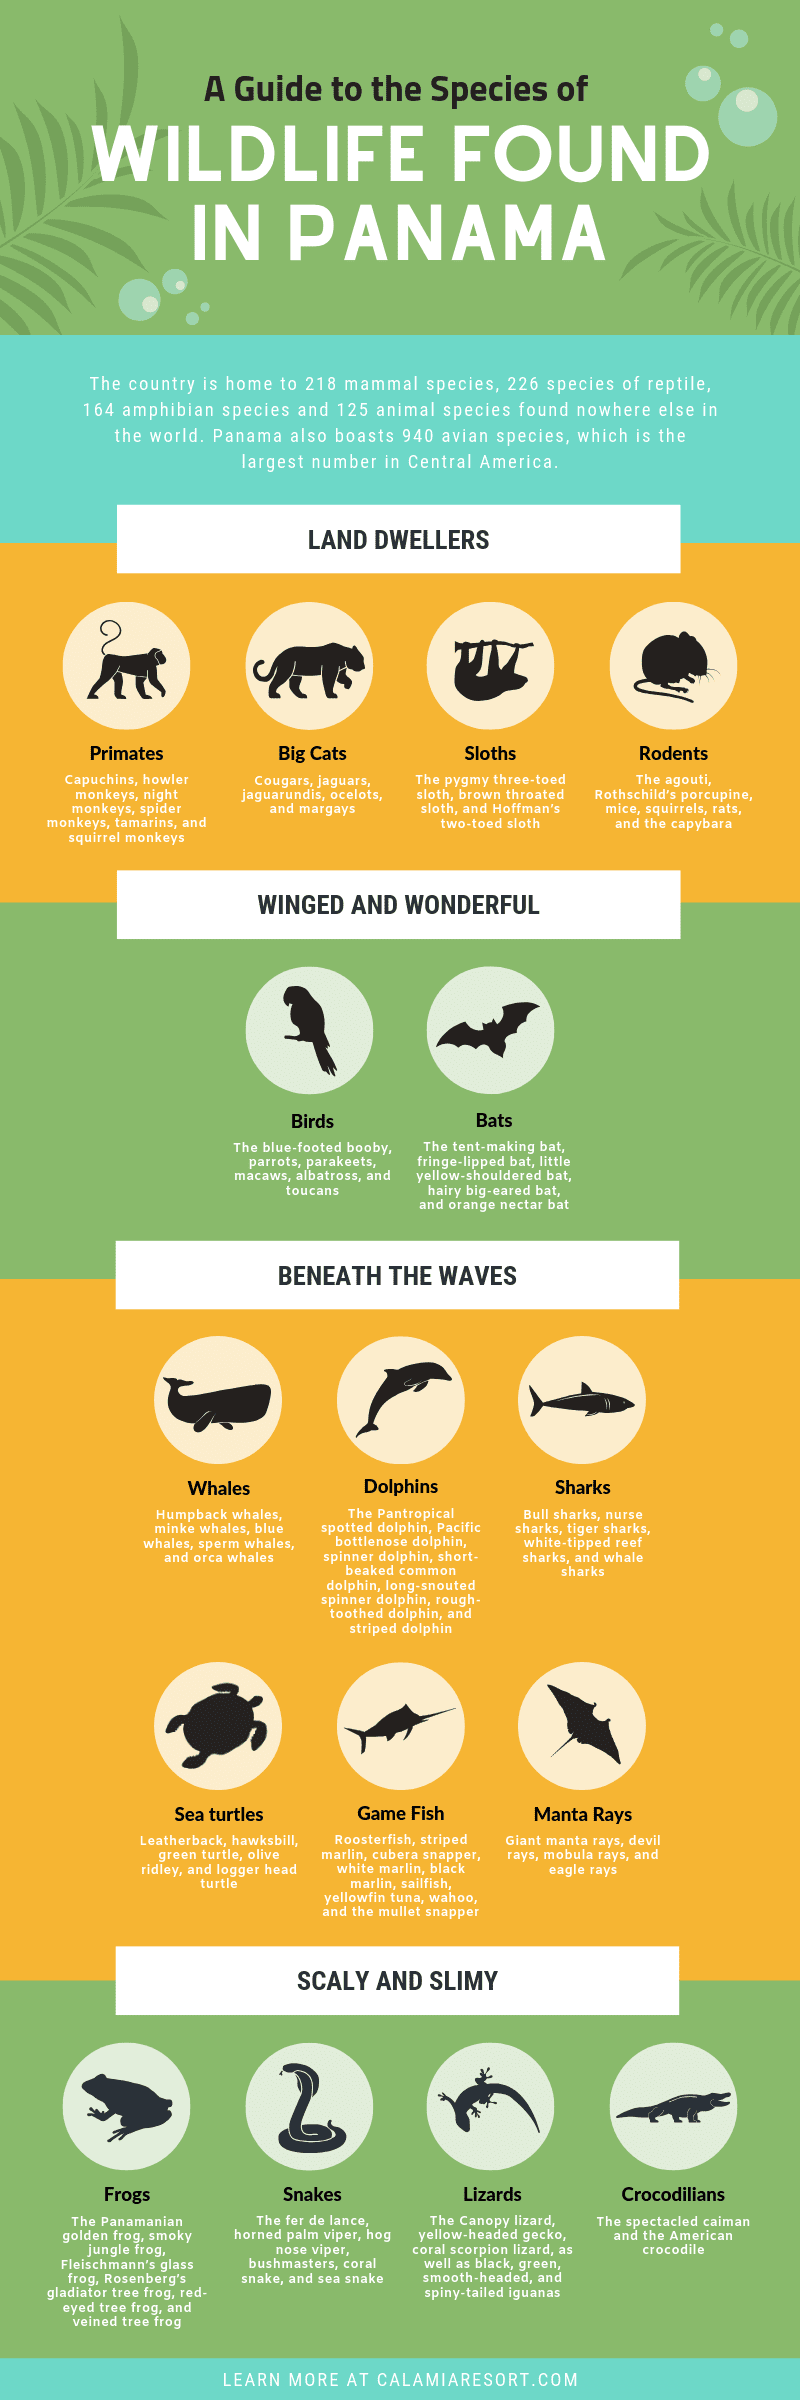 A Guide to the Species of Wildlife Found in Panama infographic